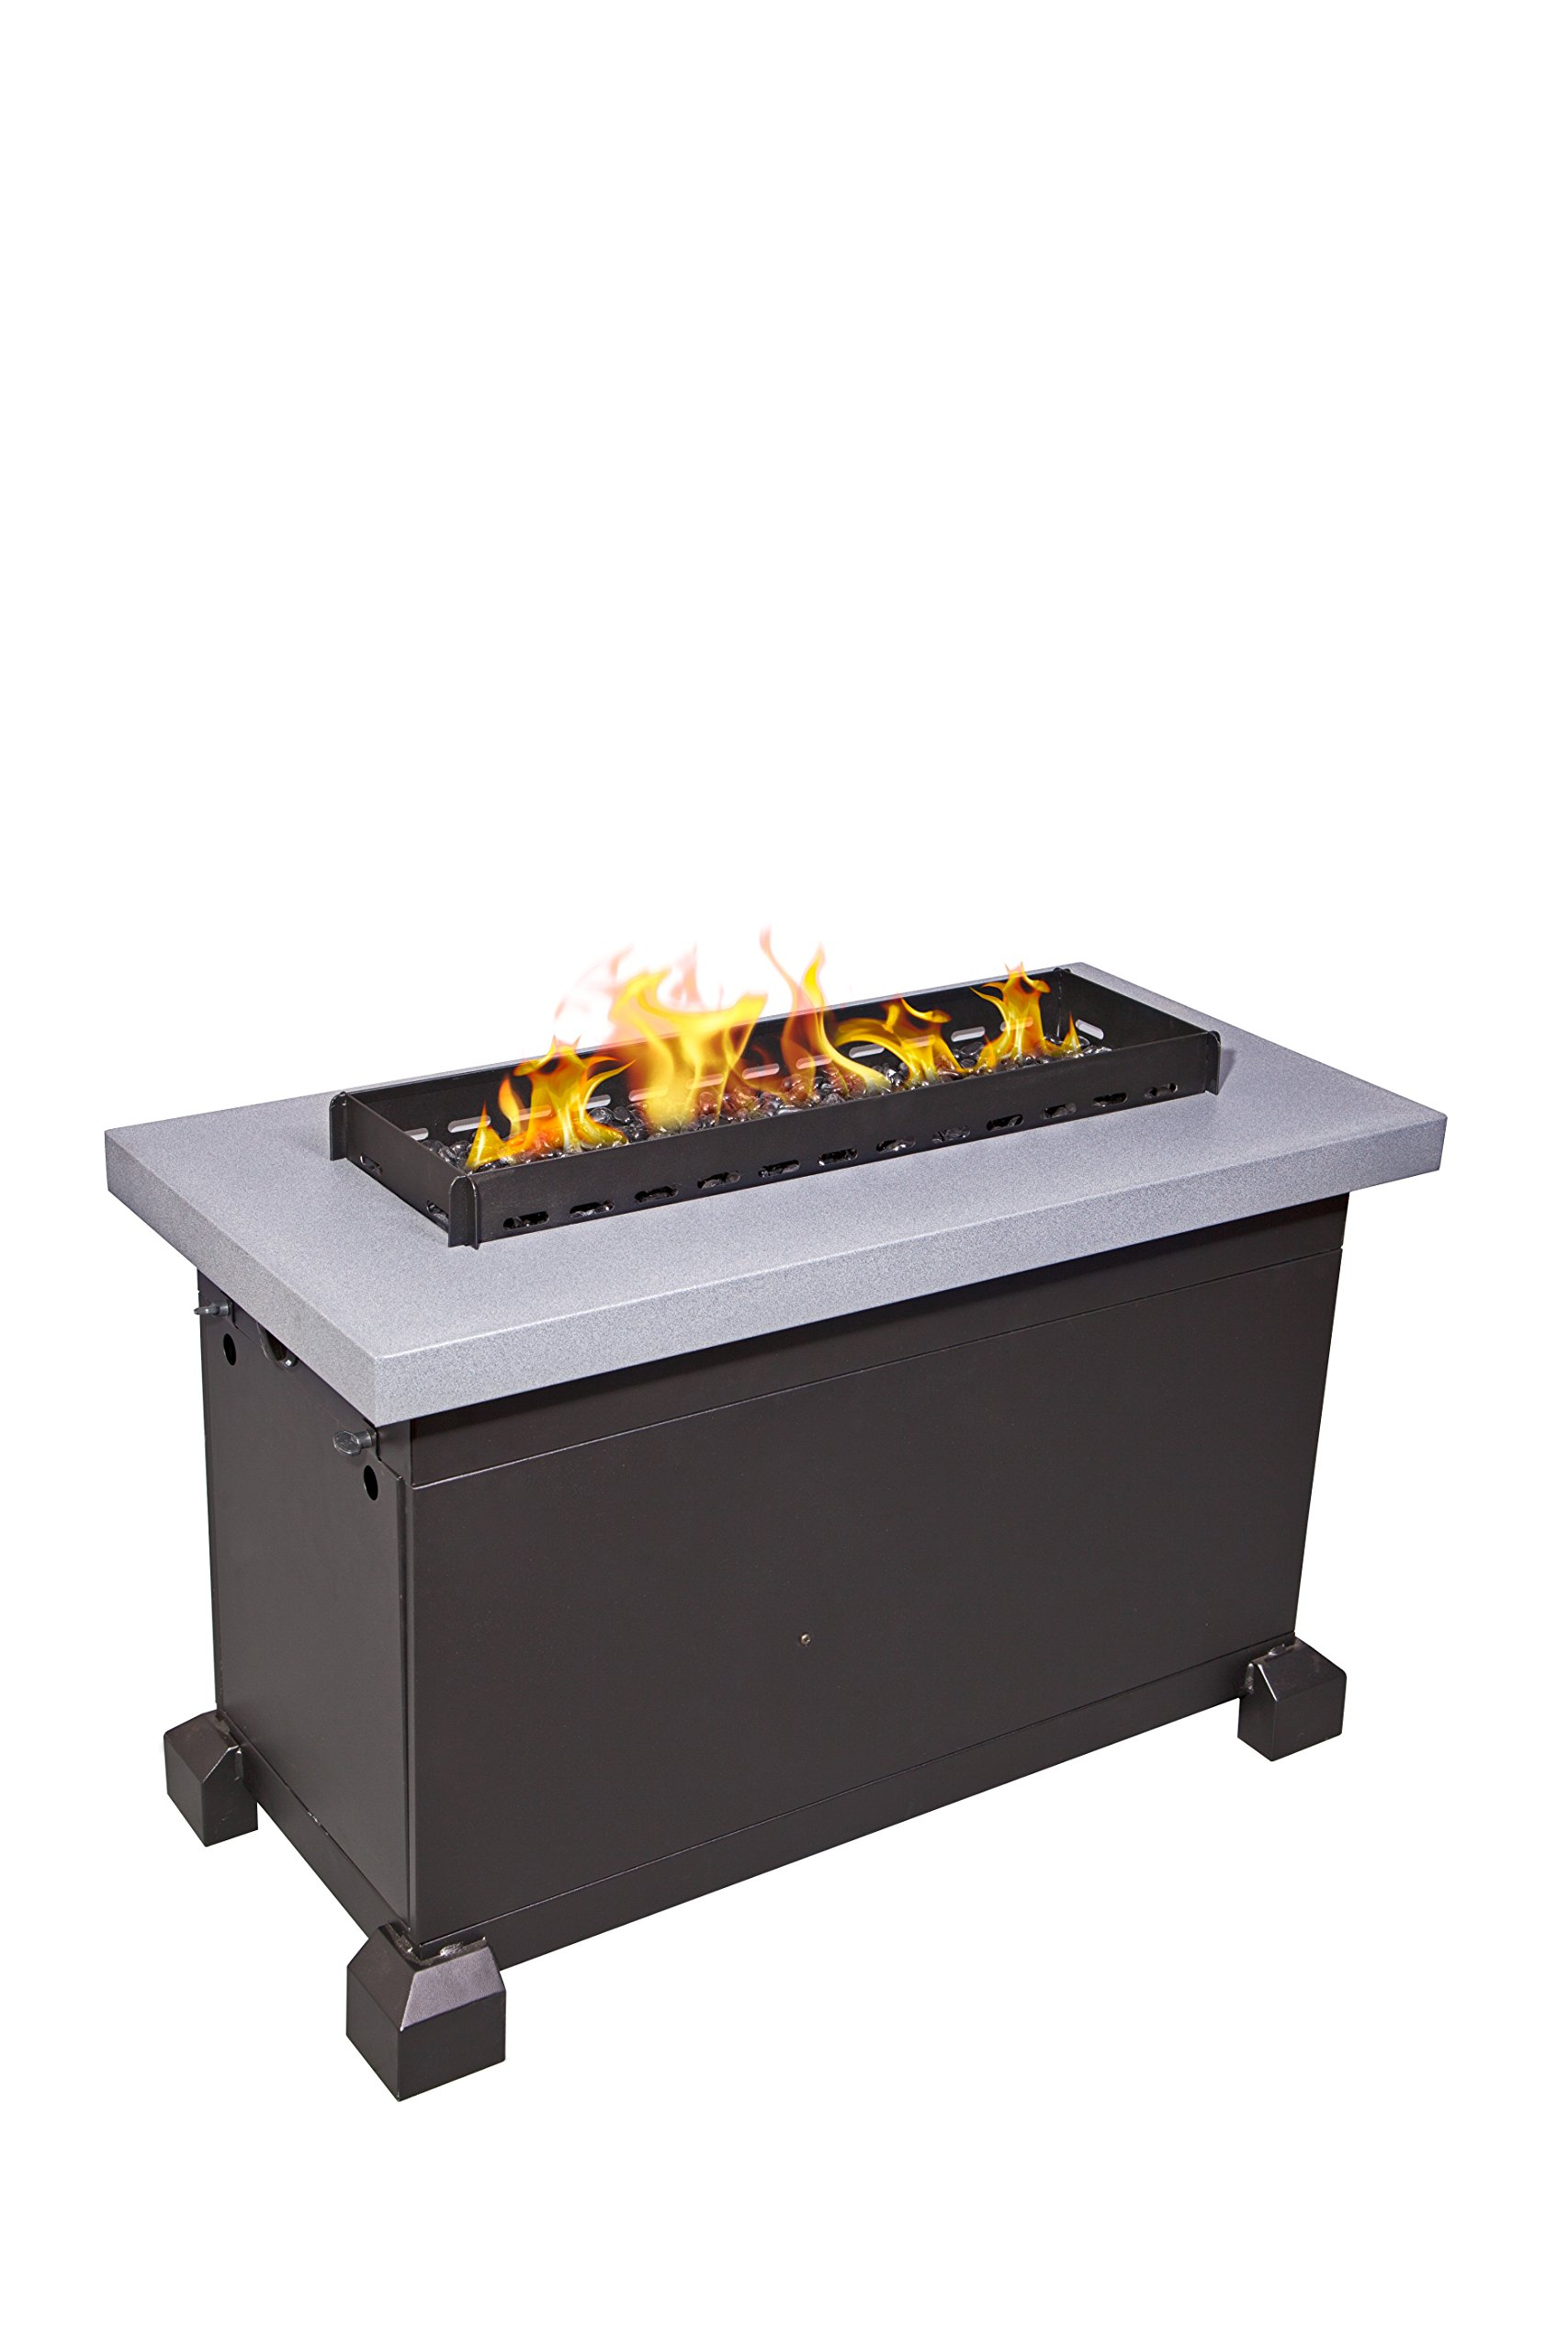 Camp Chef FP40G Monterey Propane Fire Table, Gray by Camp Chef